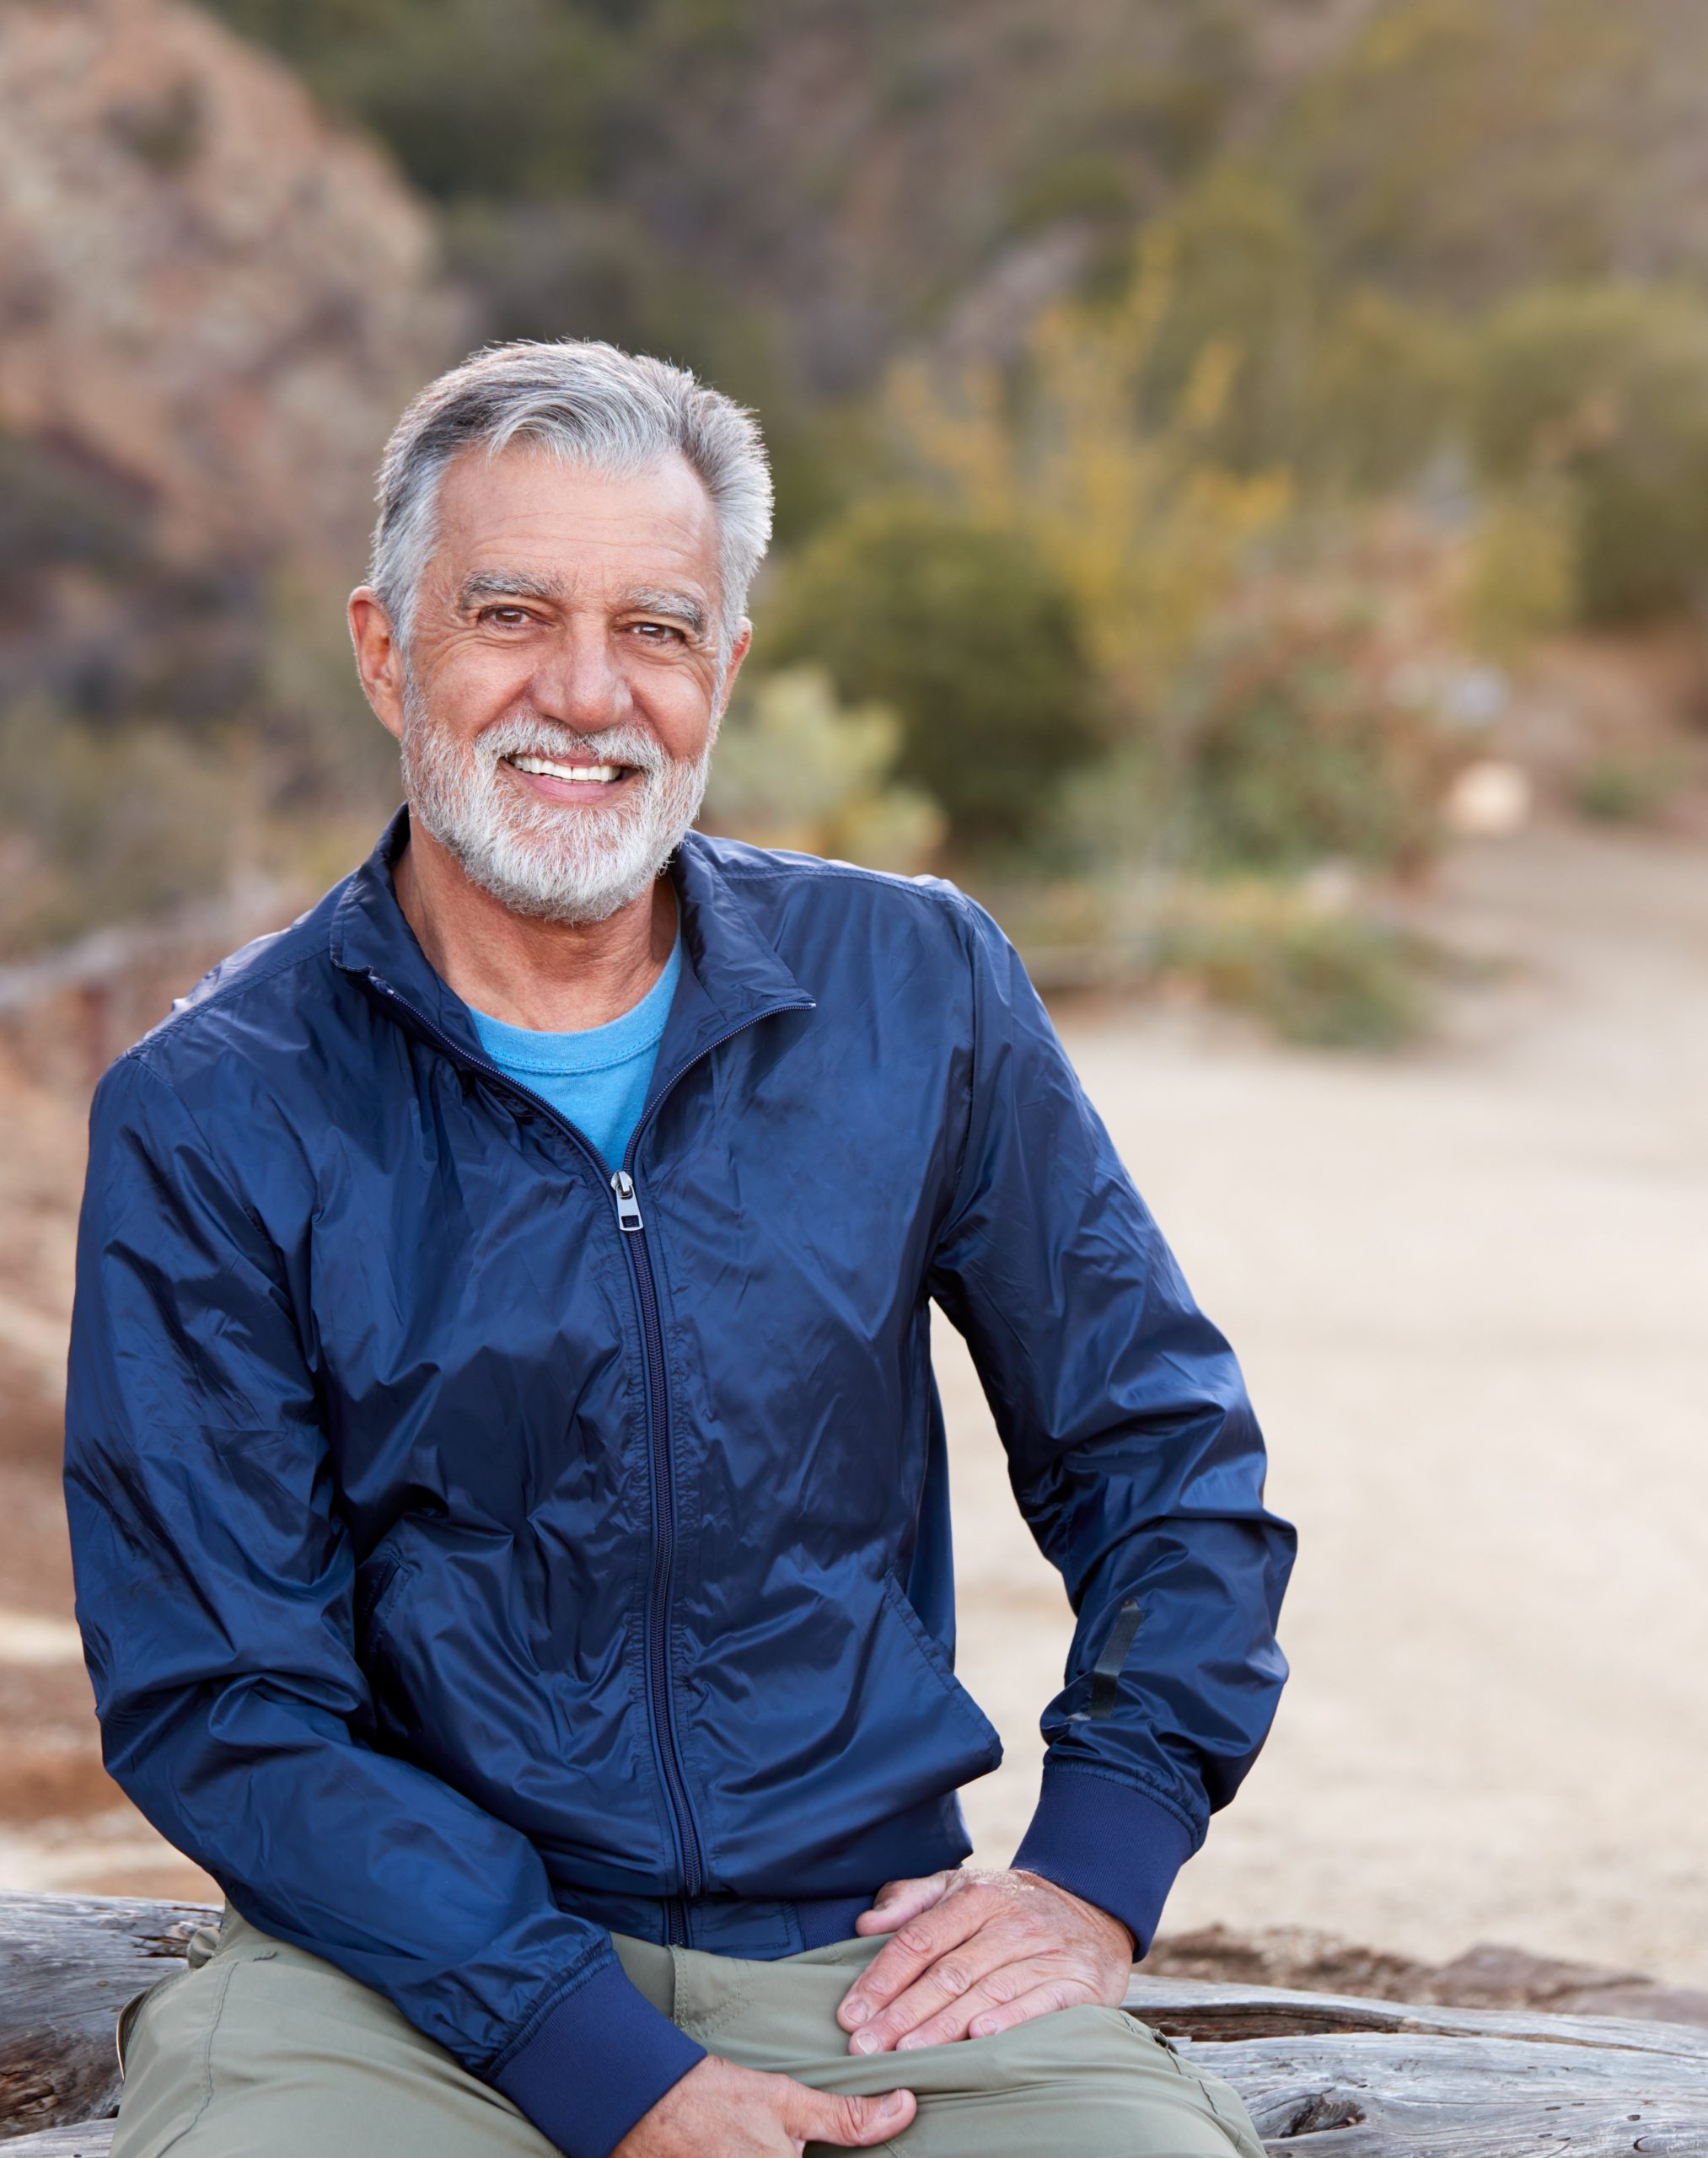 Portrait Of Smiling Hispanic Senior Man Outdoors In Countryside